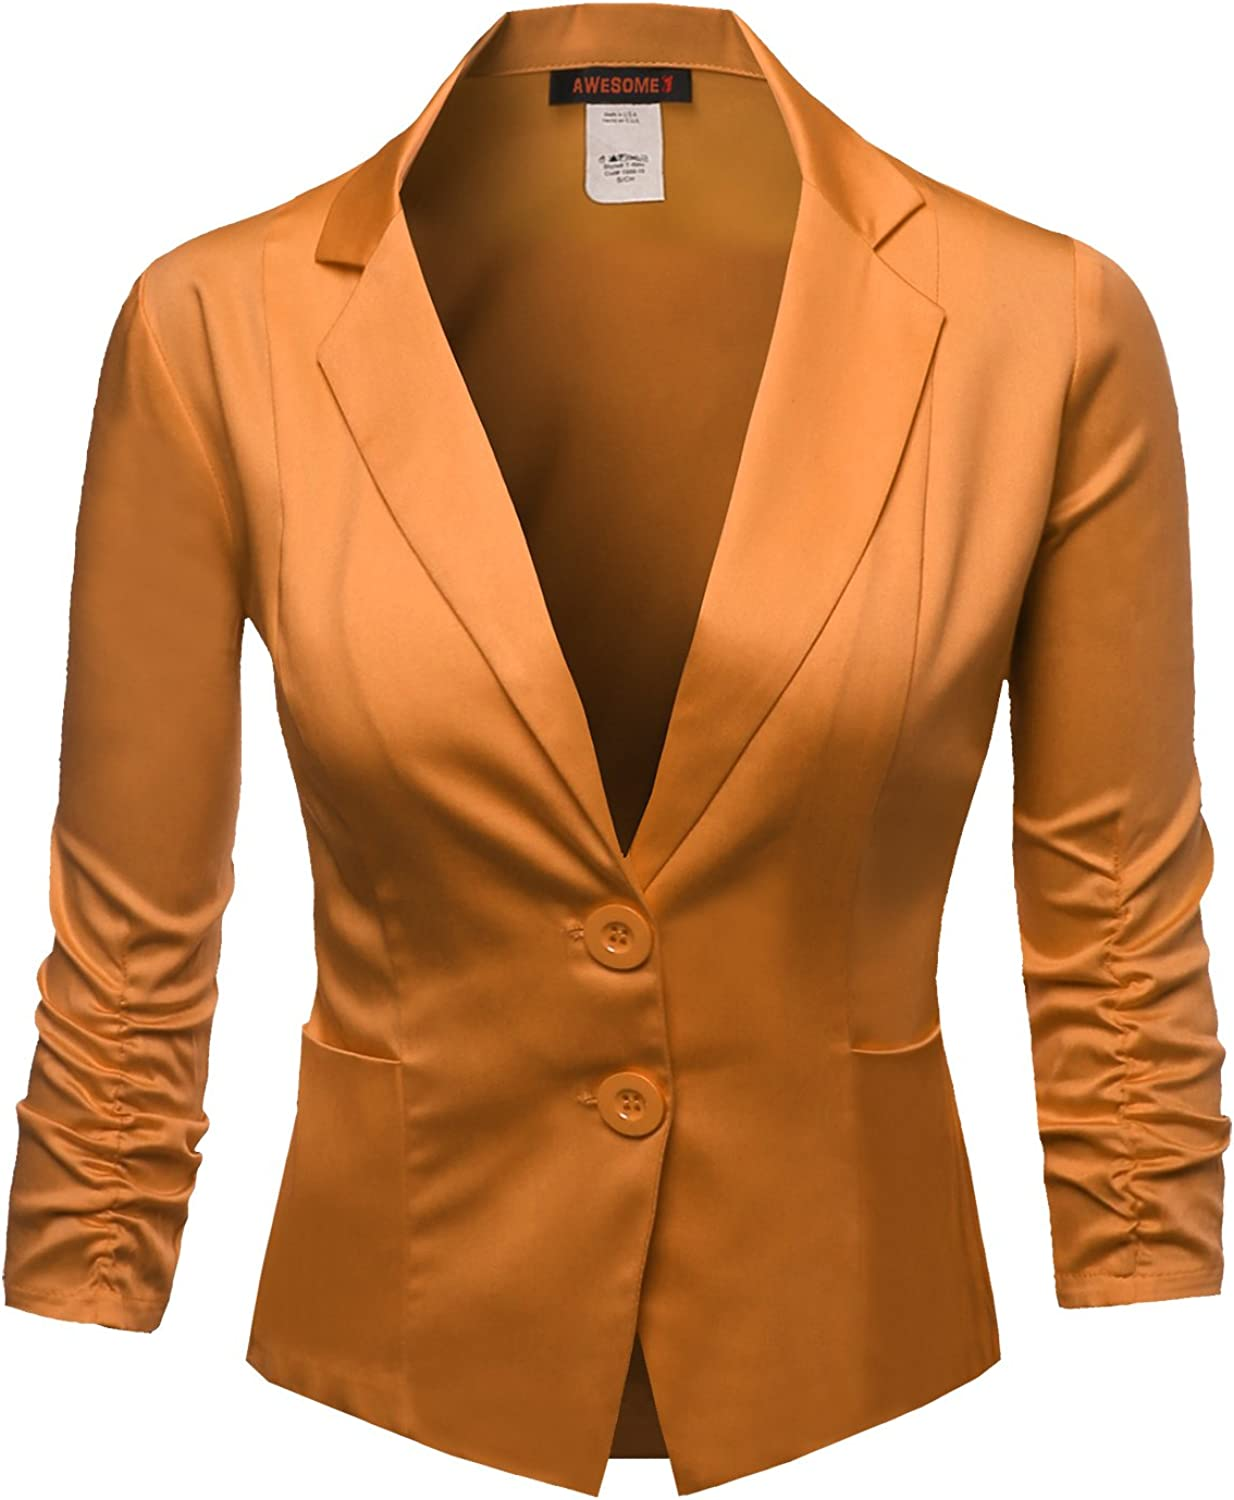 Awesome21 Women's Basic Solid color Princessline Silky Cotton Plus Size Blazer